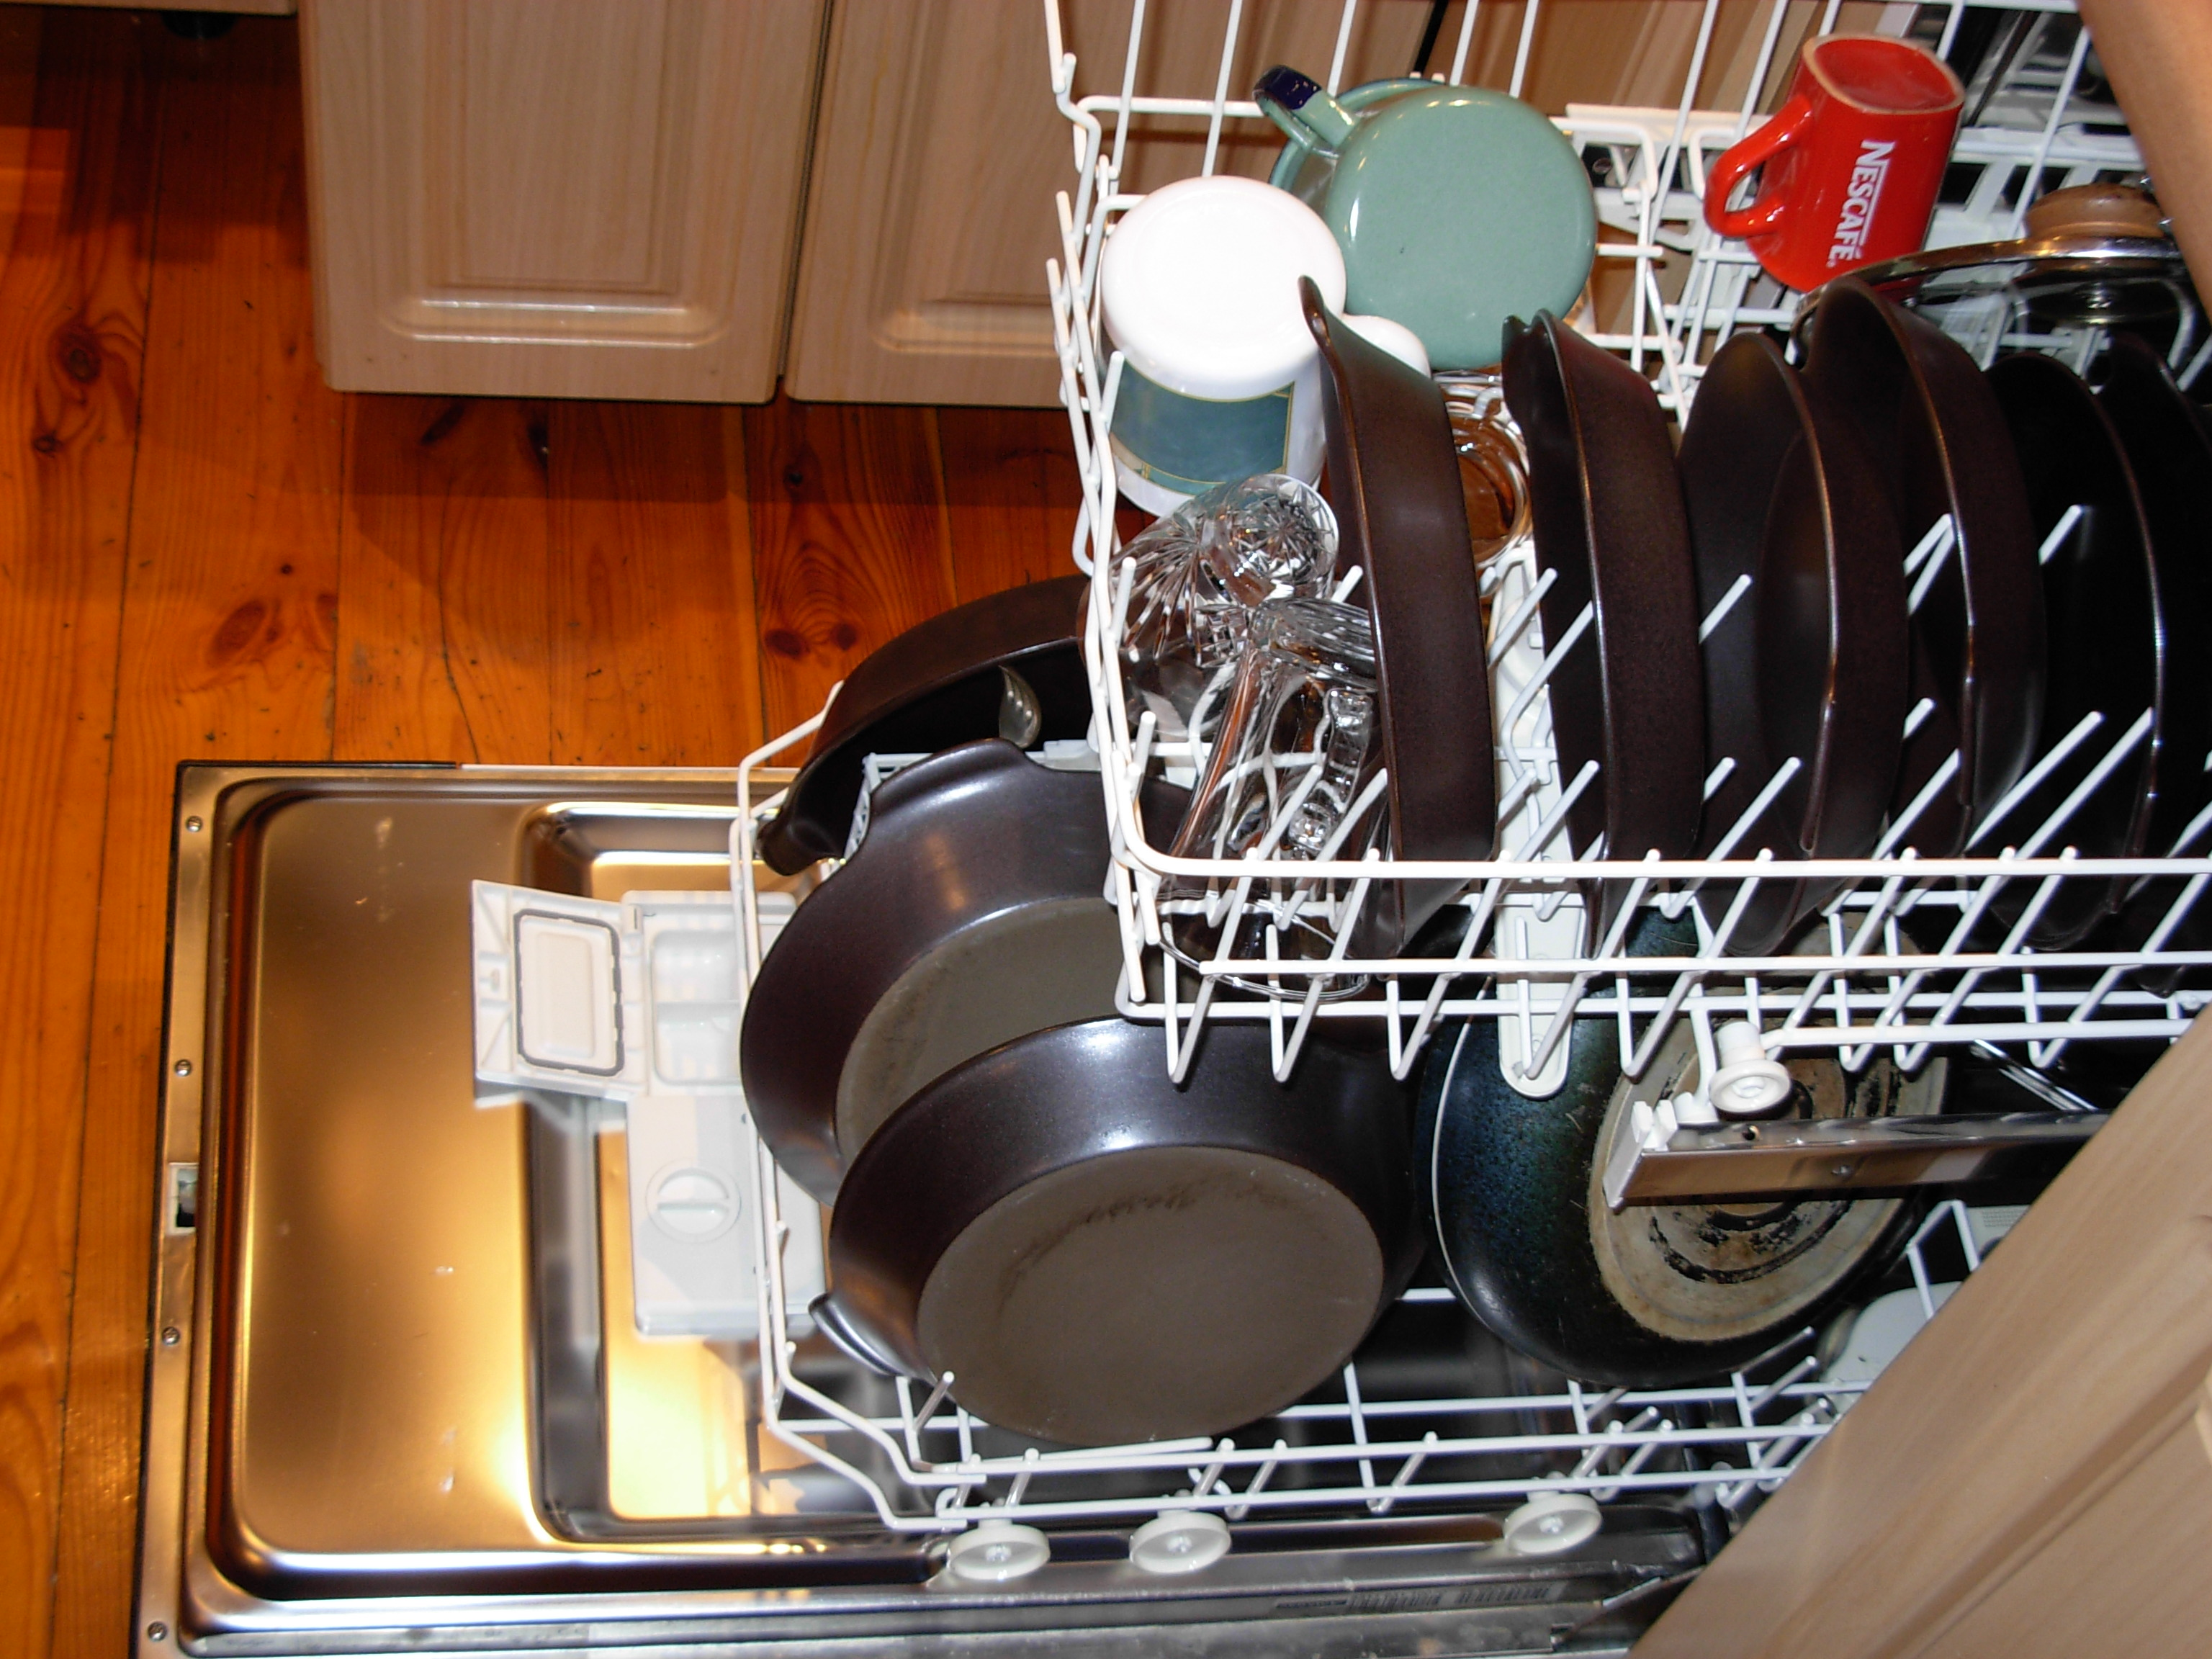 dishwasher repair in nyc